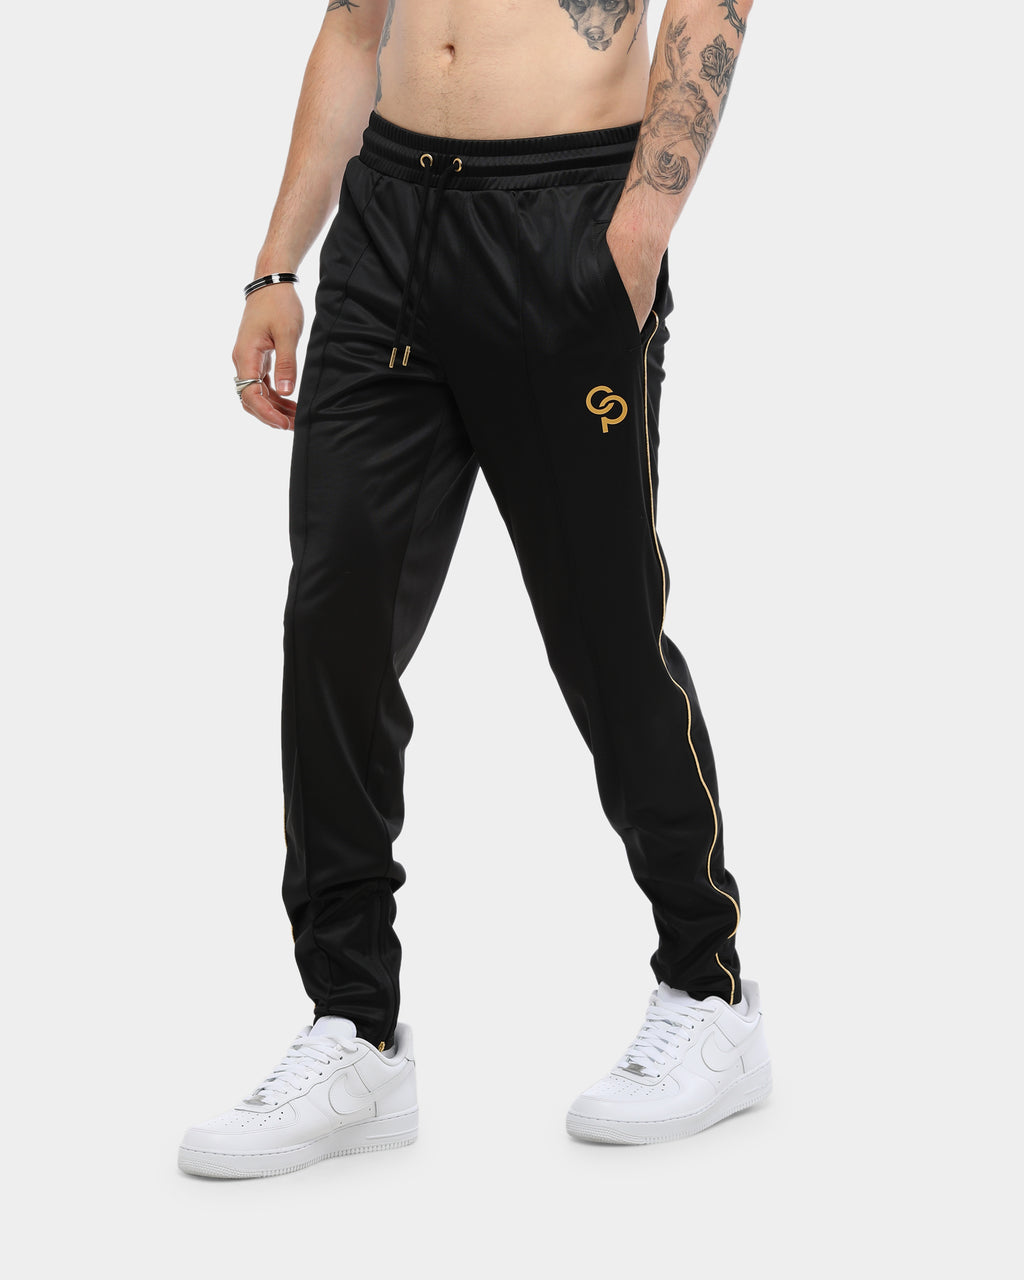 Carré Men's De Luxe Sport Pant Black